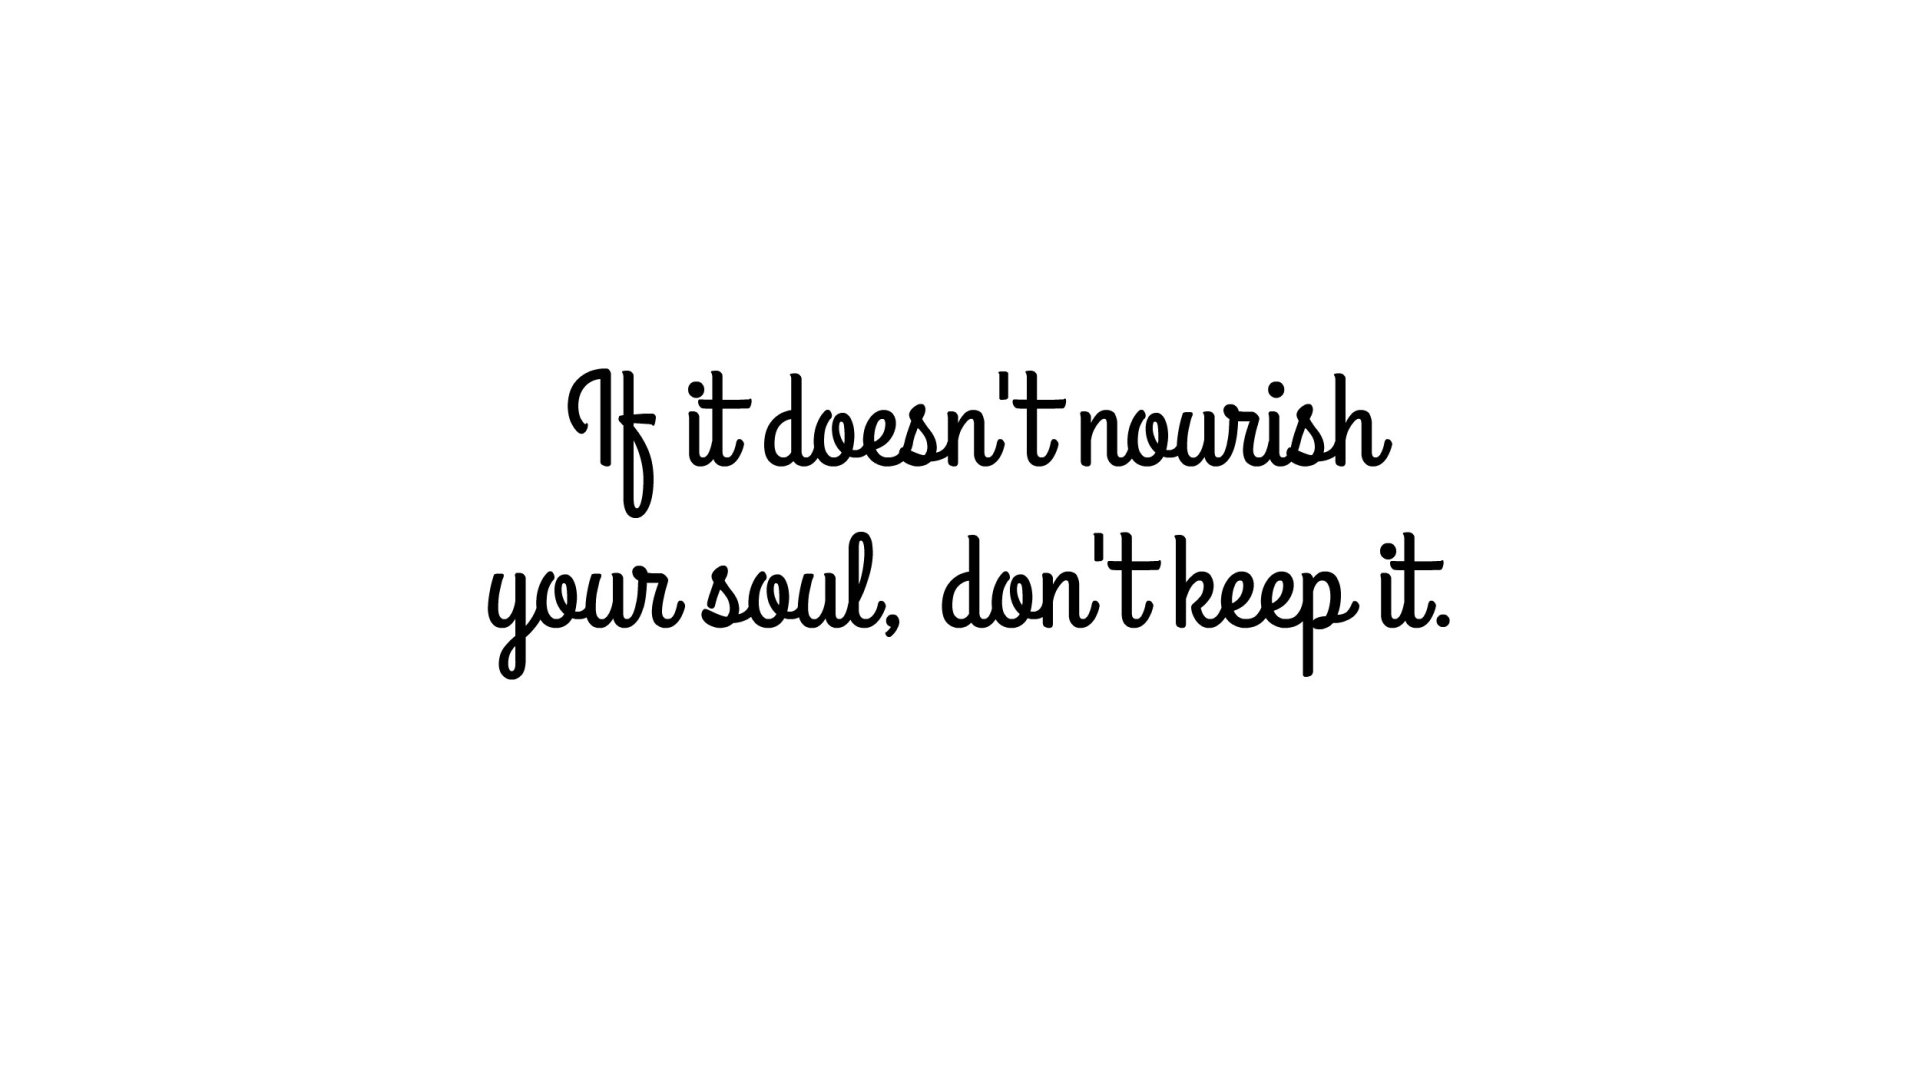 minimalism quote - if it doesn't nourish your soul, don't keep it